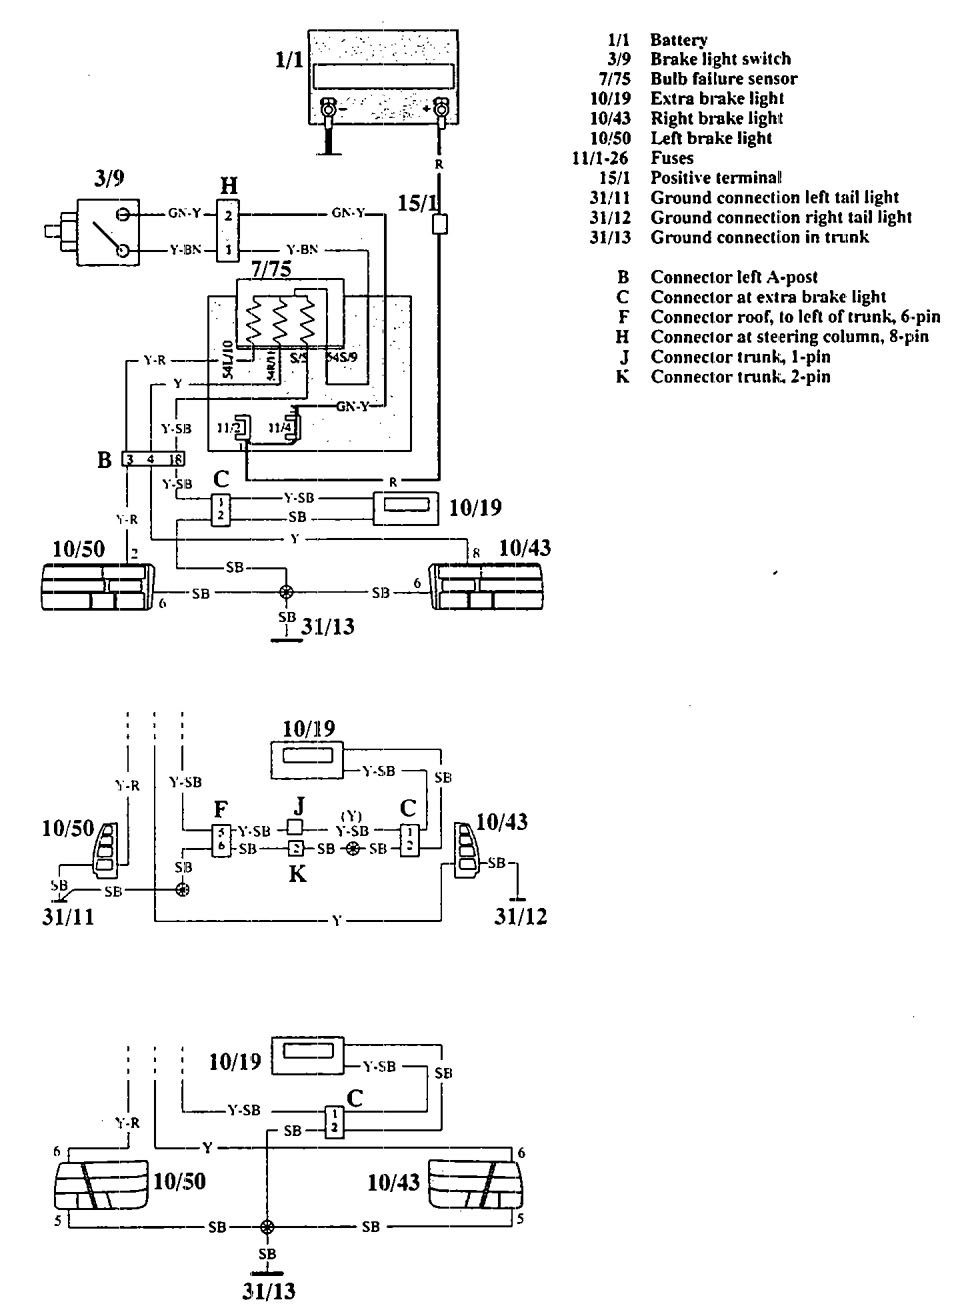 Wiring Diagram Volvo 940 Radio : Volvo fuse box diagram wiring images